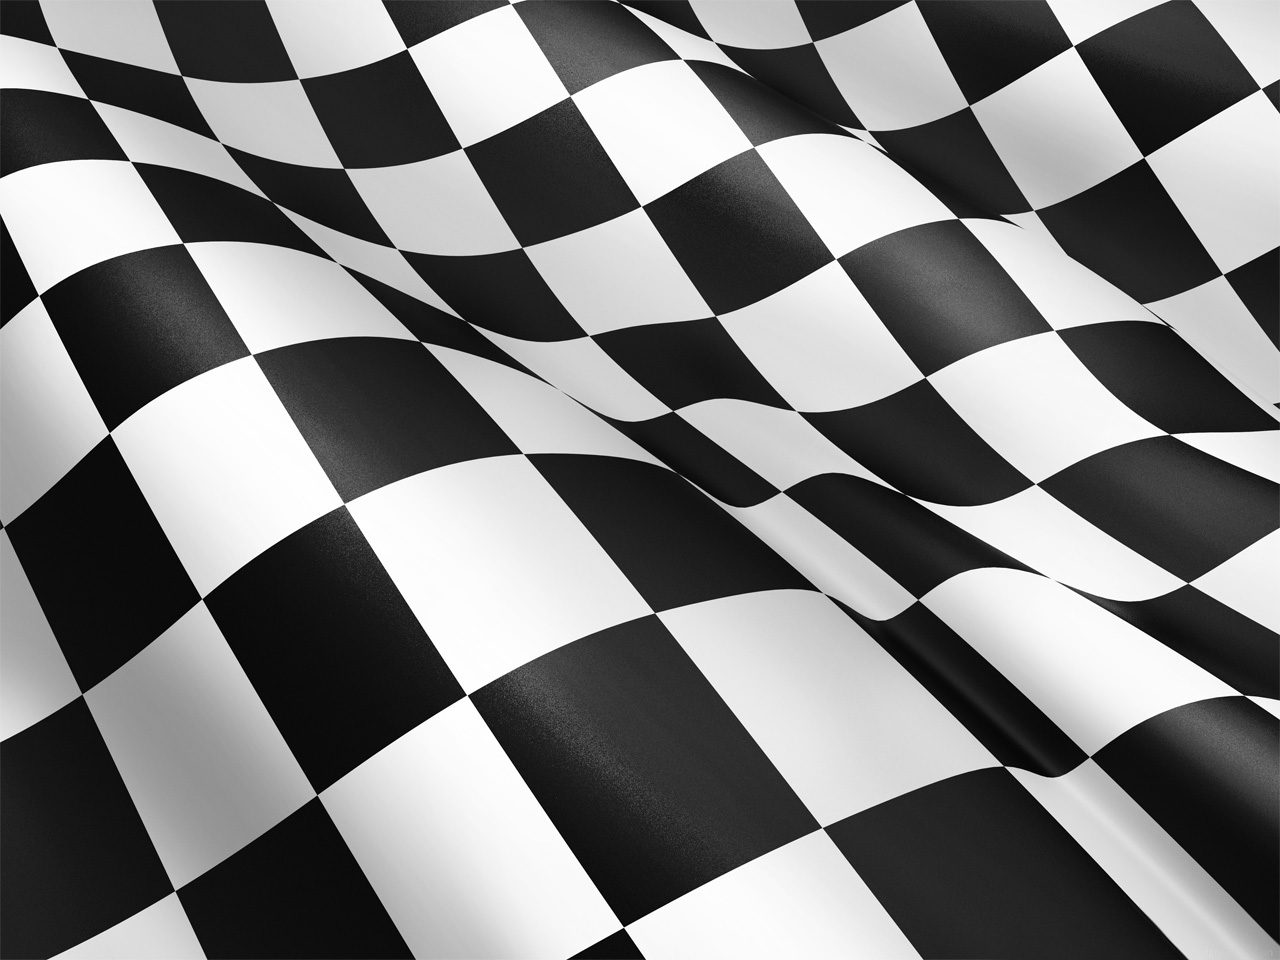 Checkered Flag PPT Backgrounds